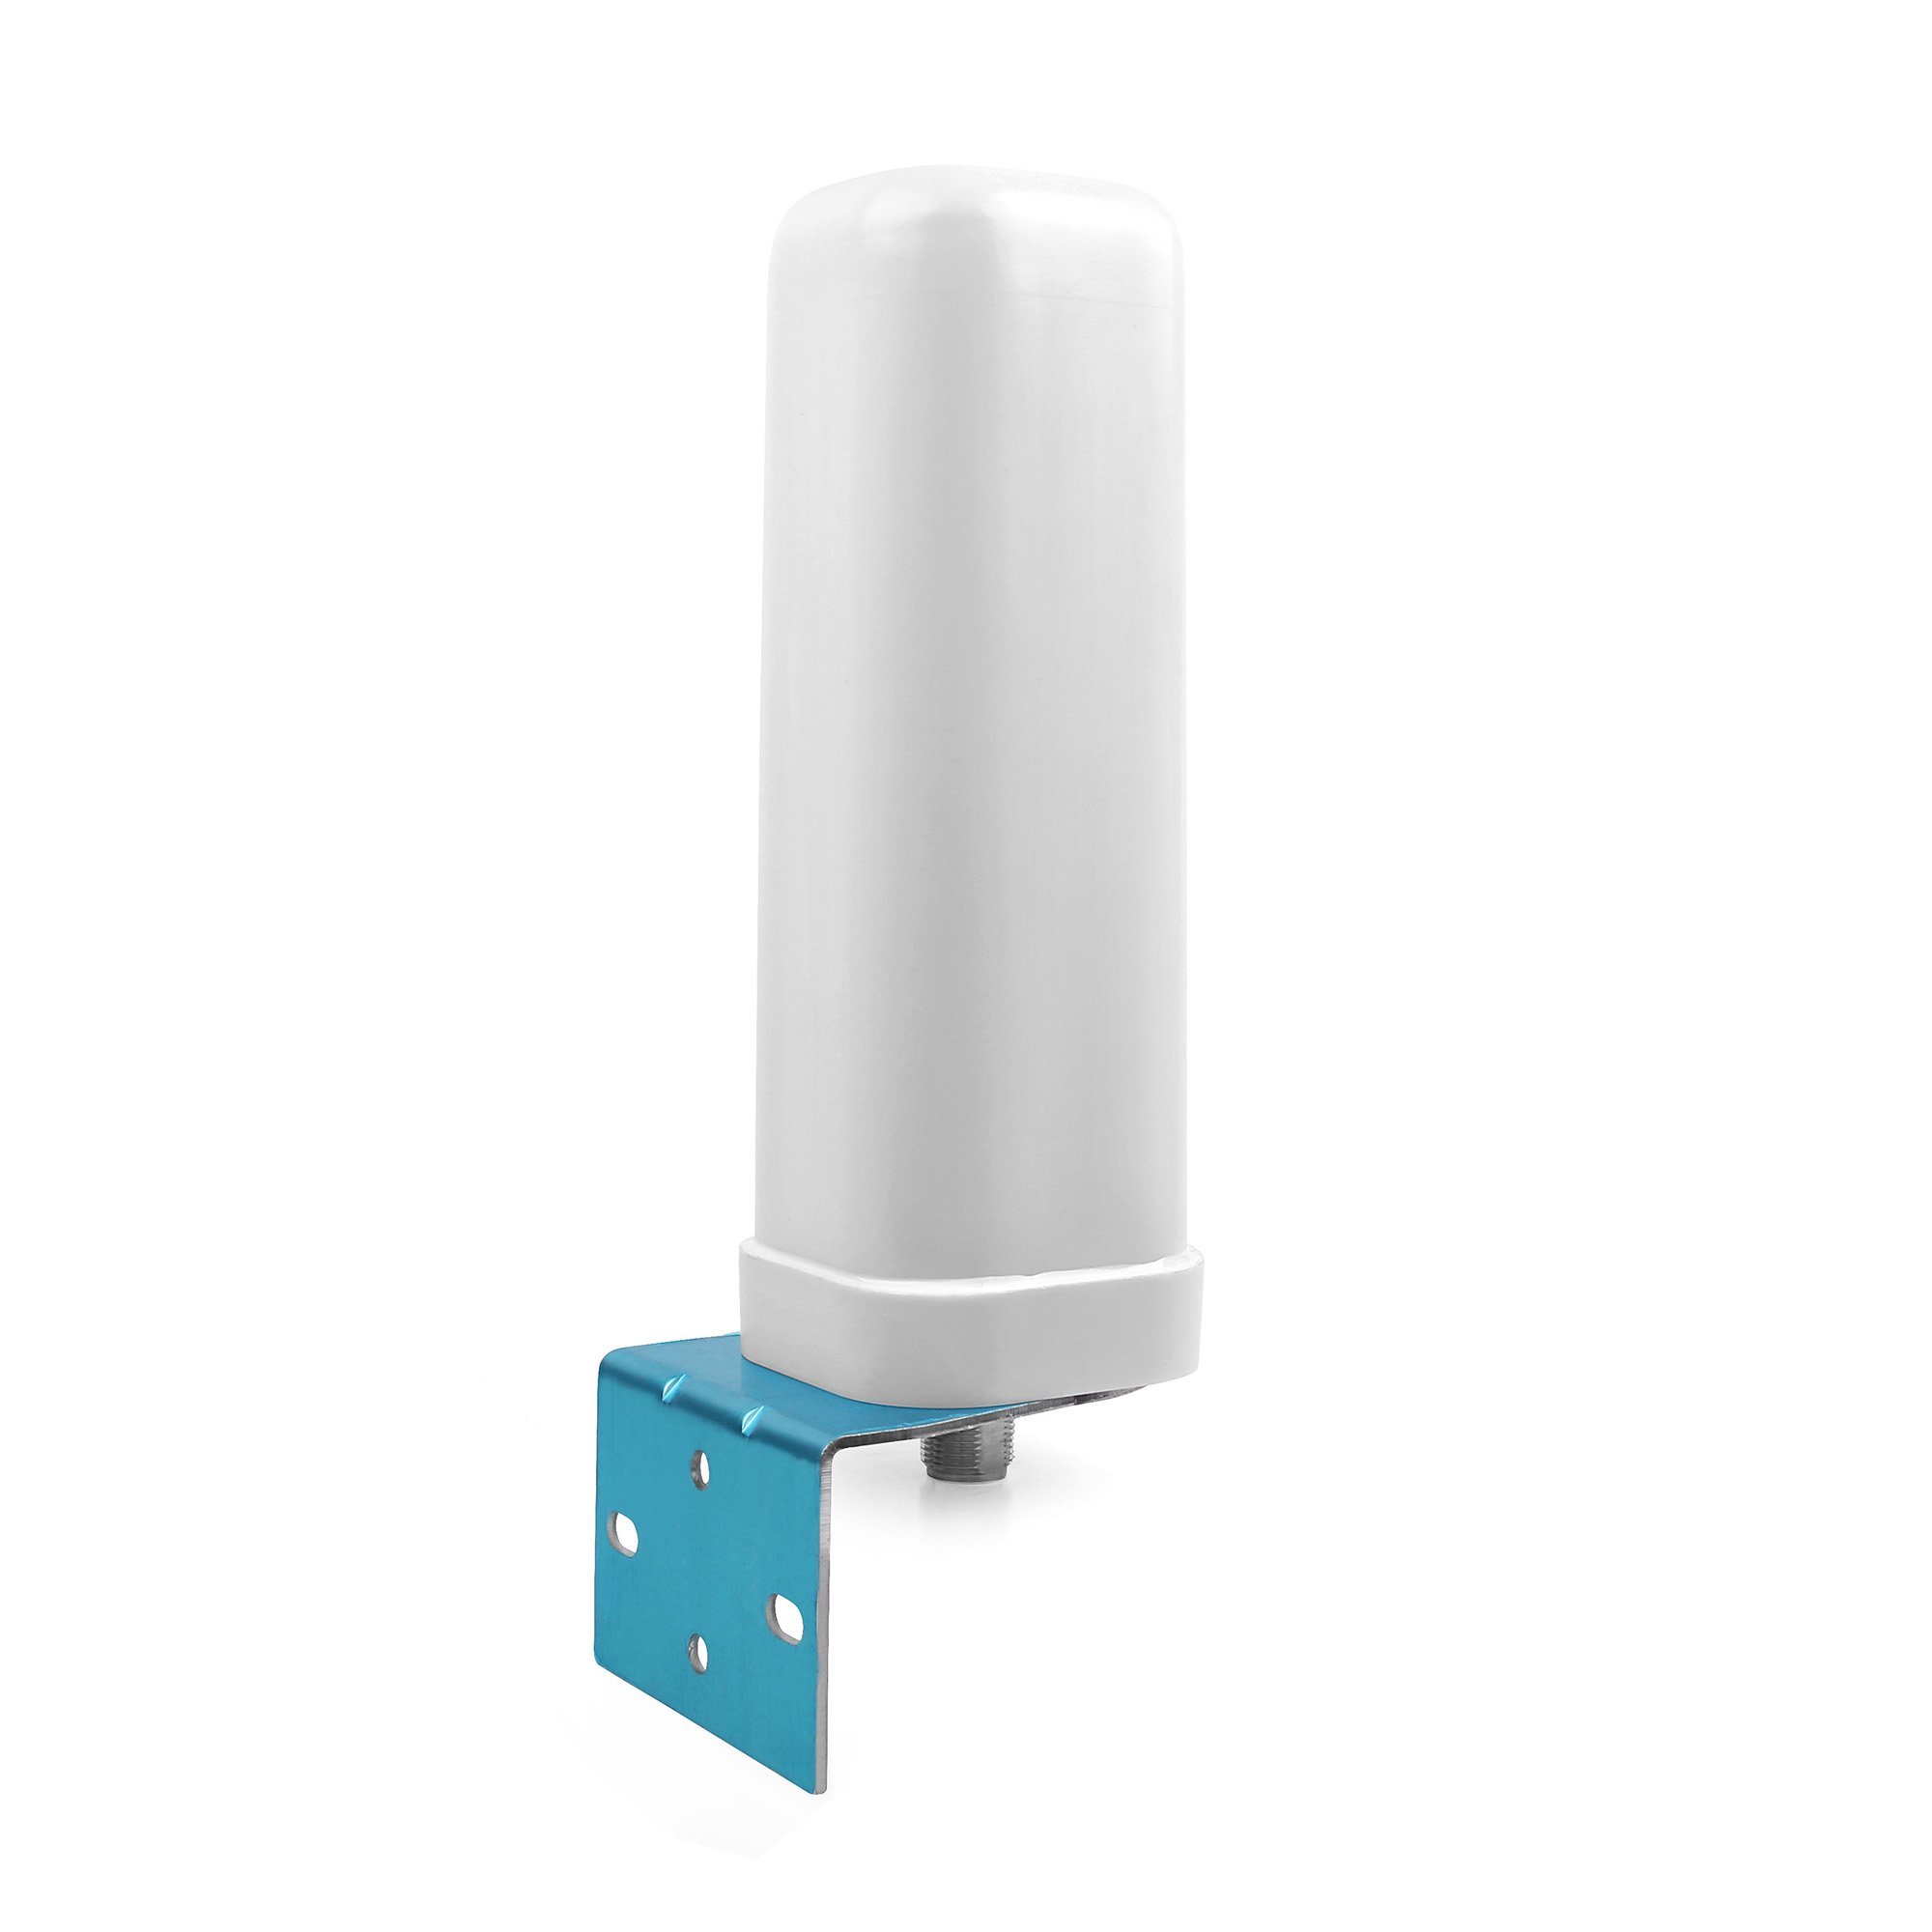 ANYCALL 3/6dBi LTE Omnidirectional Antenna Outdoor for Mobile Signal Repeater External Use